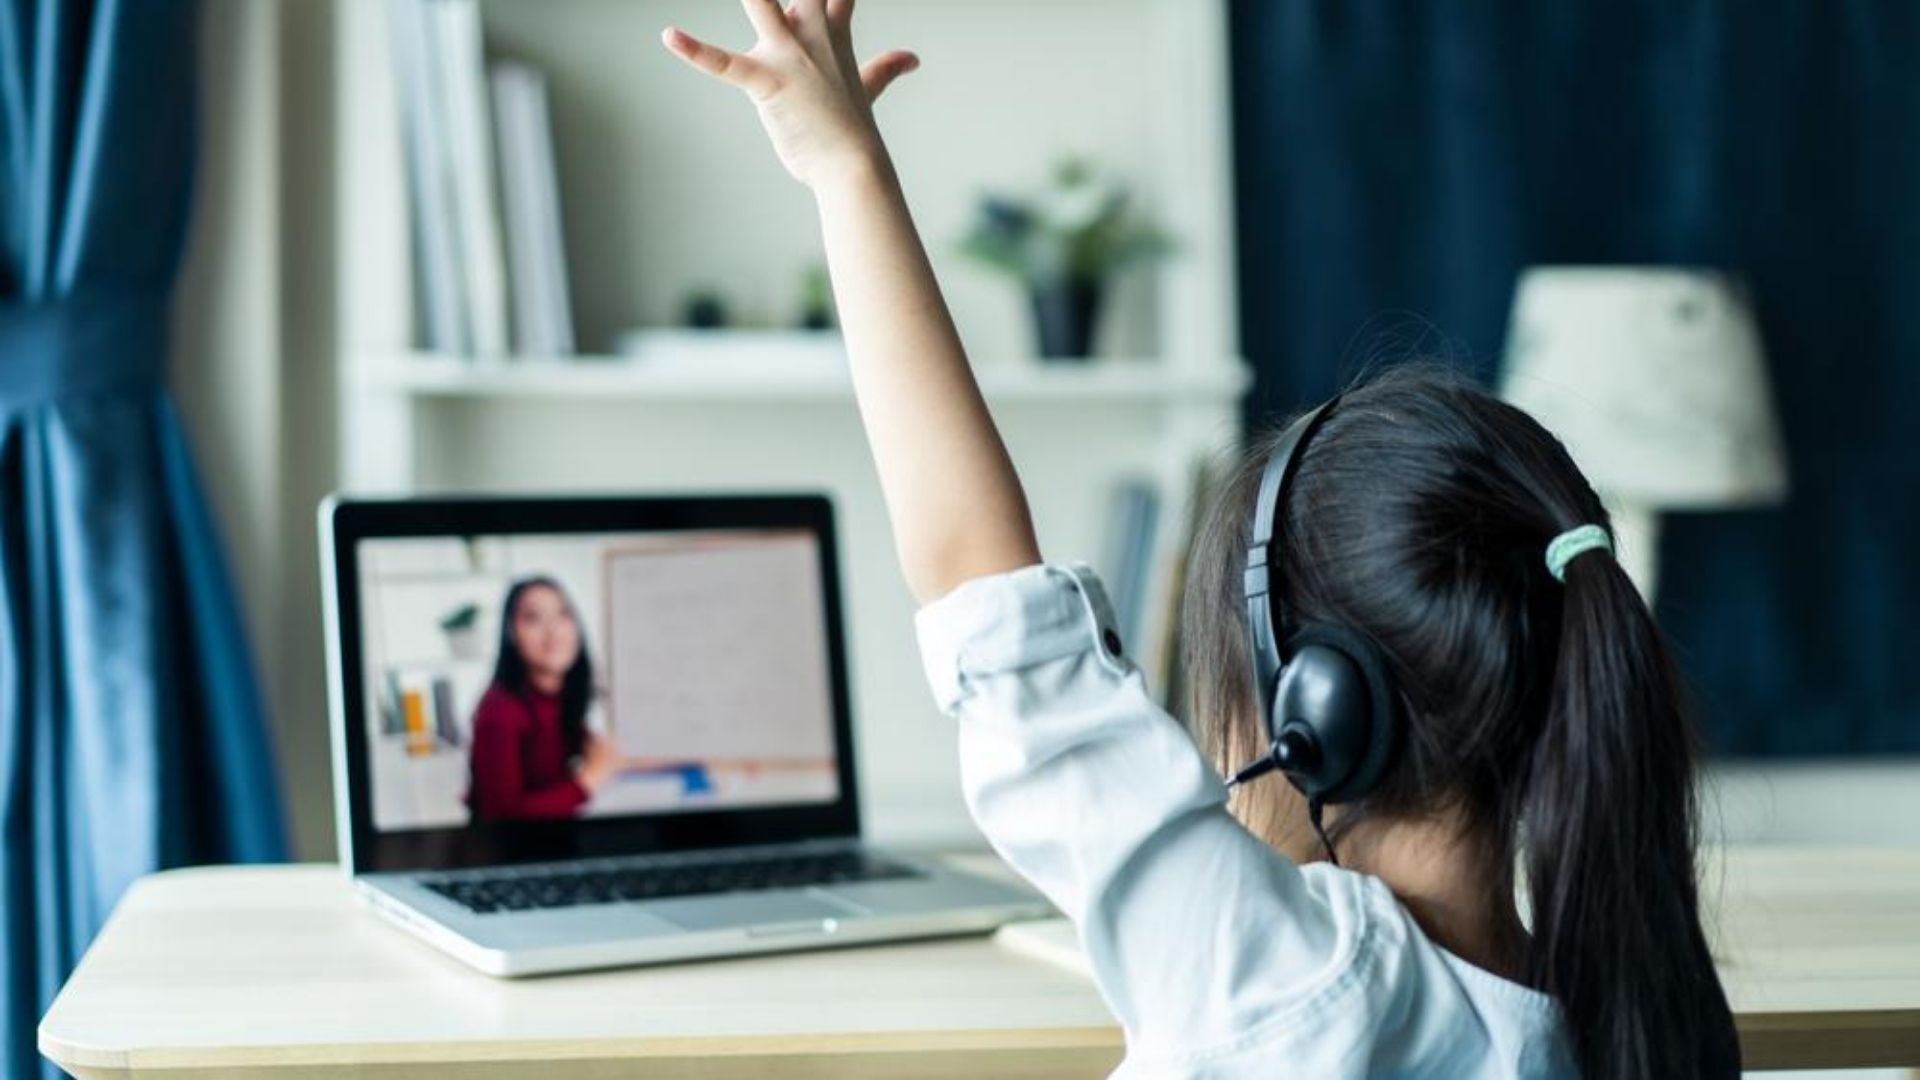 children's ergonomics tips for setting up a workstation for remote learning